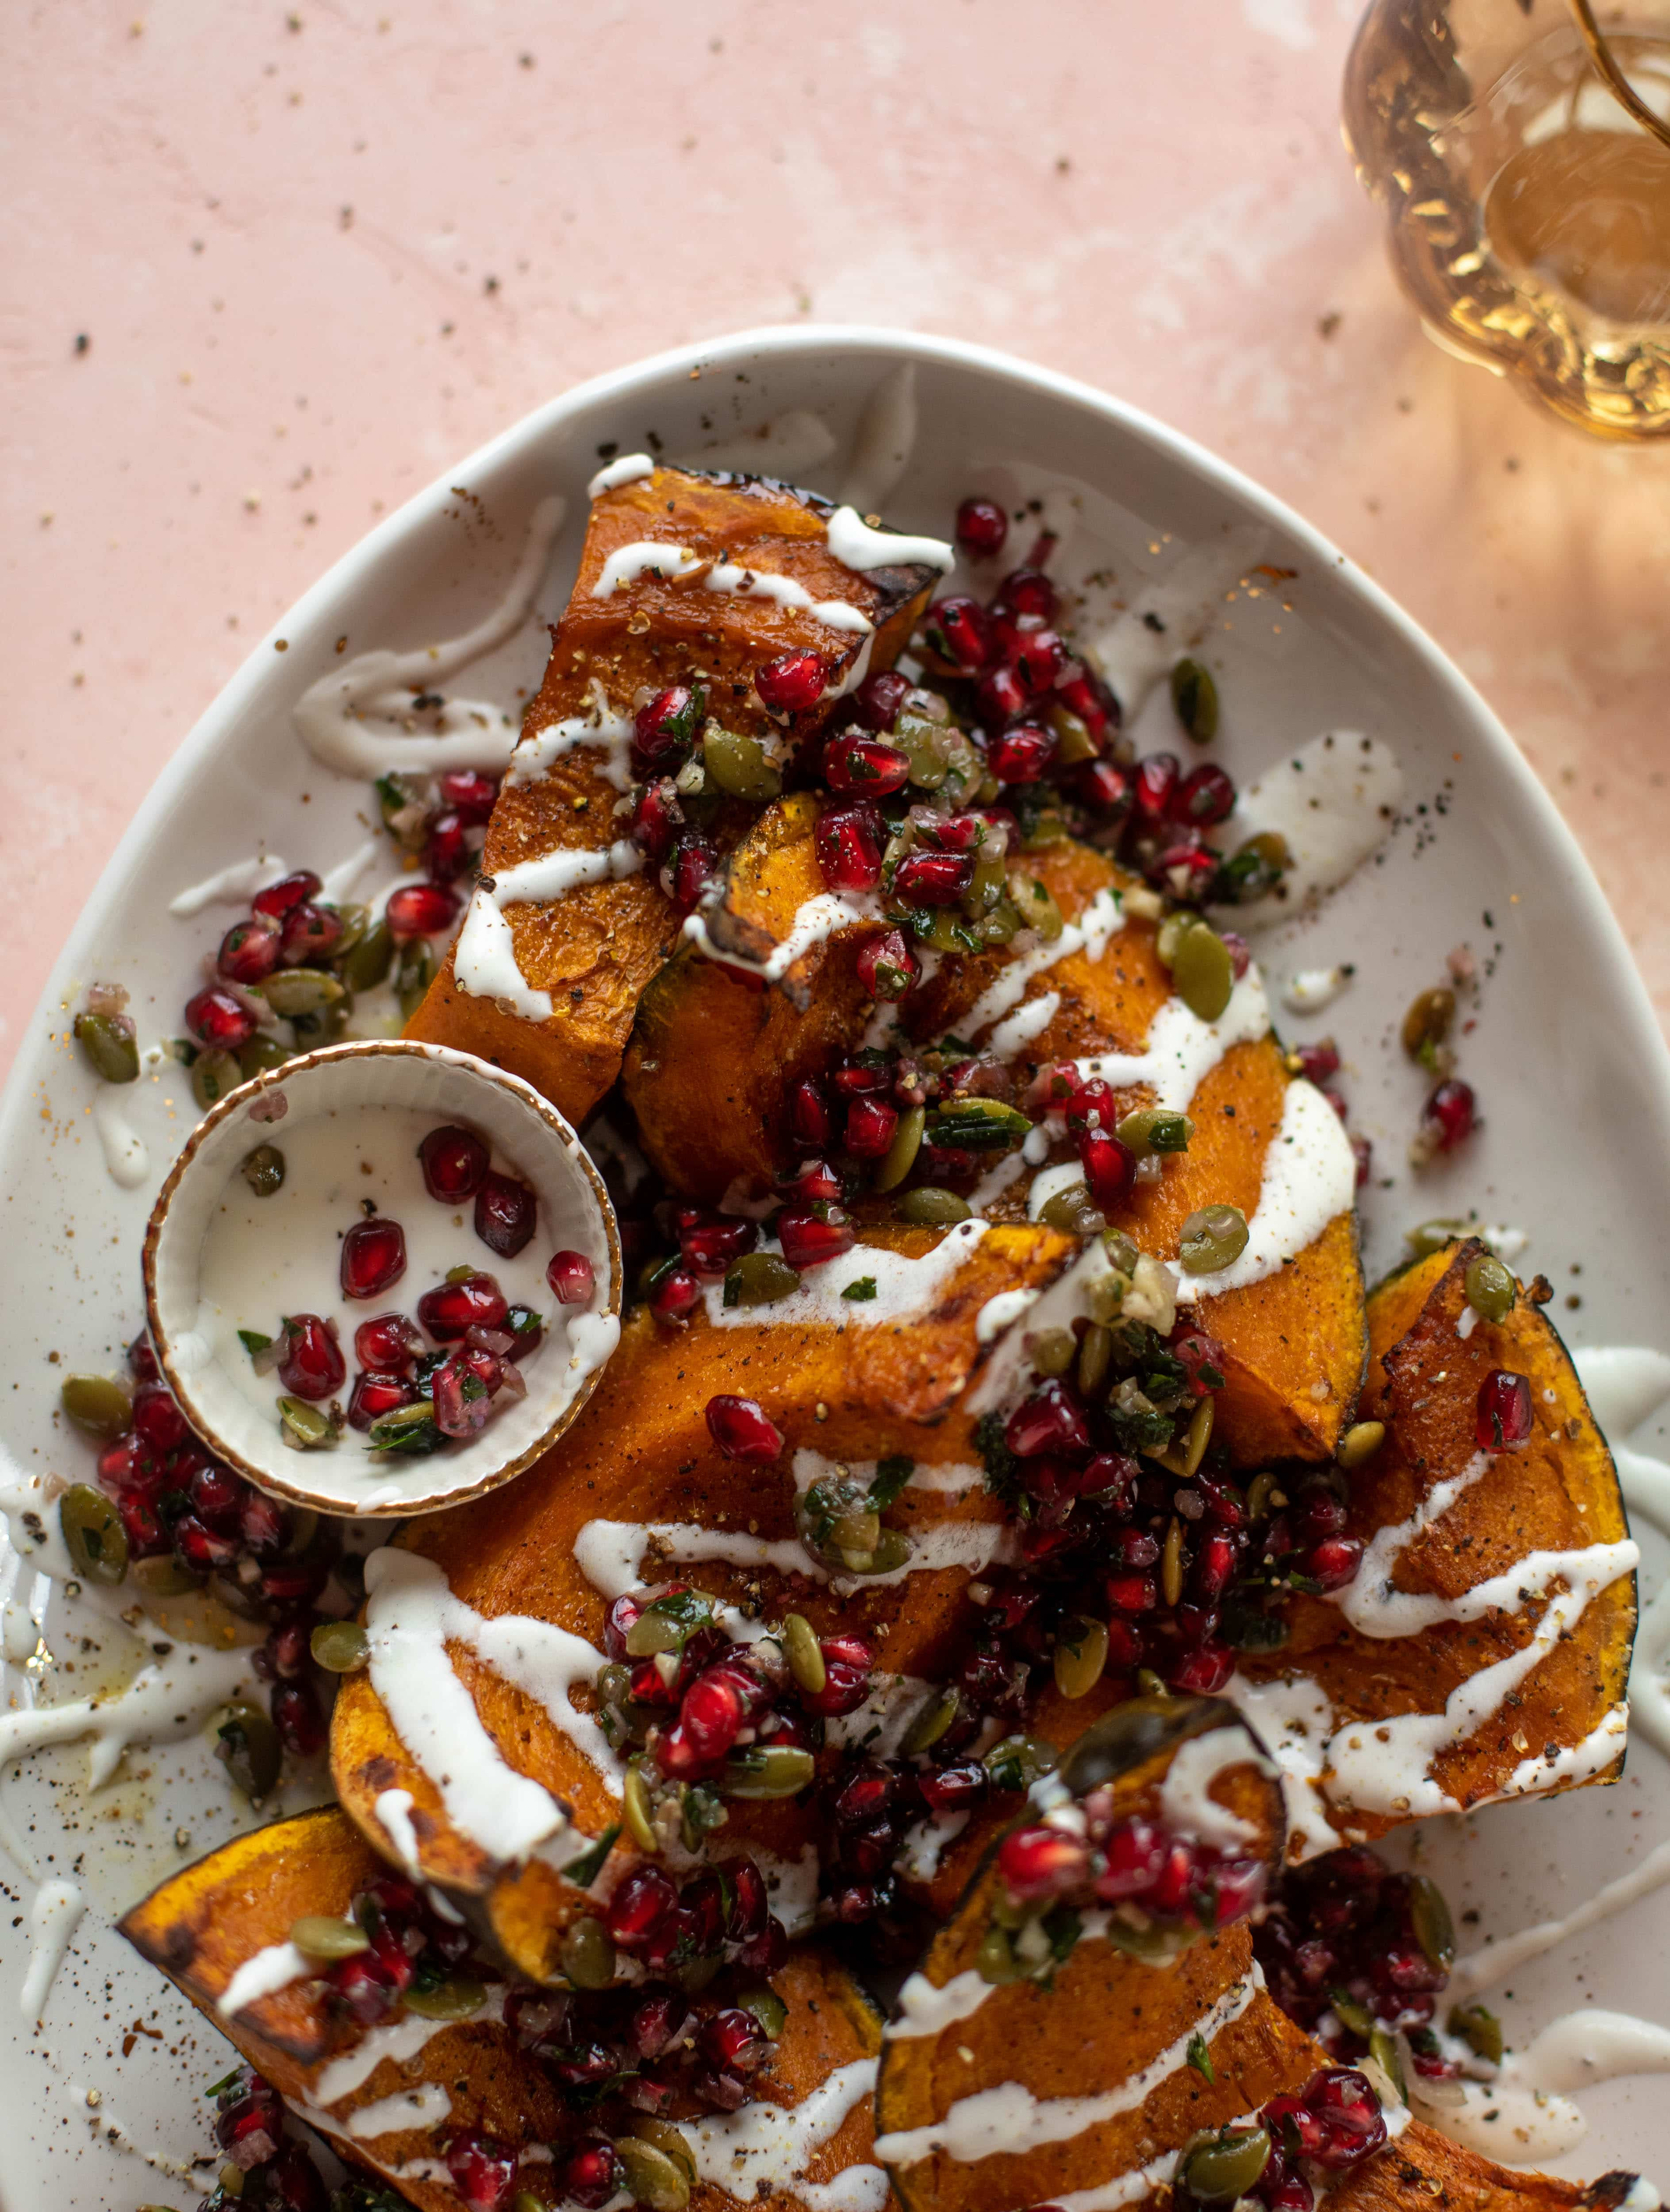 This roasted kabocha squash is caramely and naturally sweet, drizzled with whipped goat cheese and topped with pomegranate pepita relish. It's unreal!